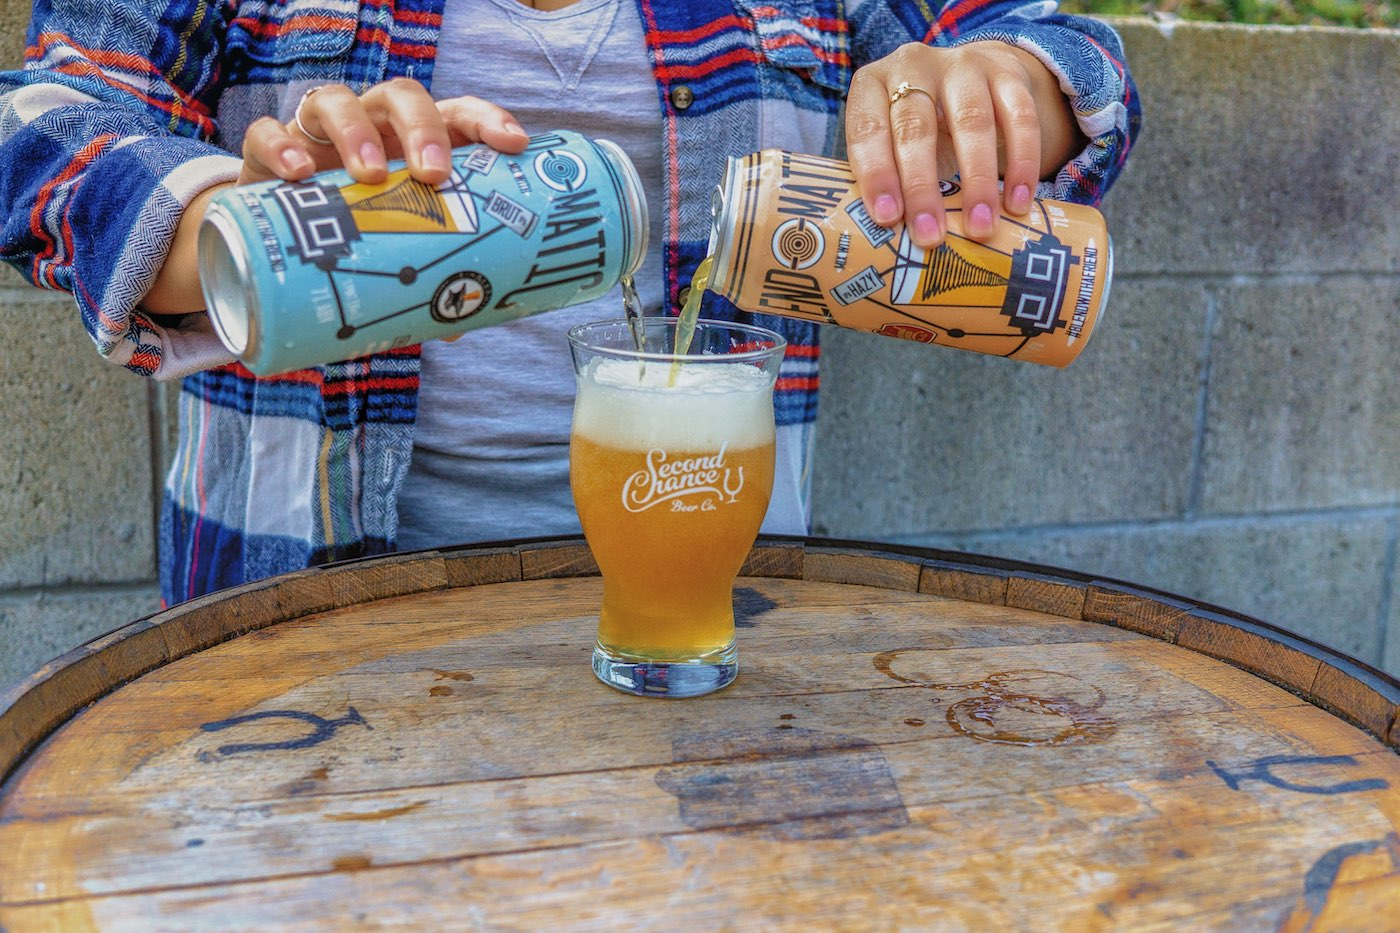 Second Chance Beer Company Announces Groundbreaking Collaboration with AleSmith Brewing Company